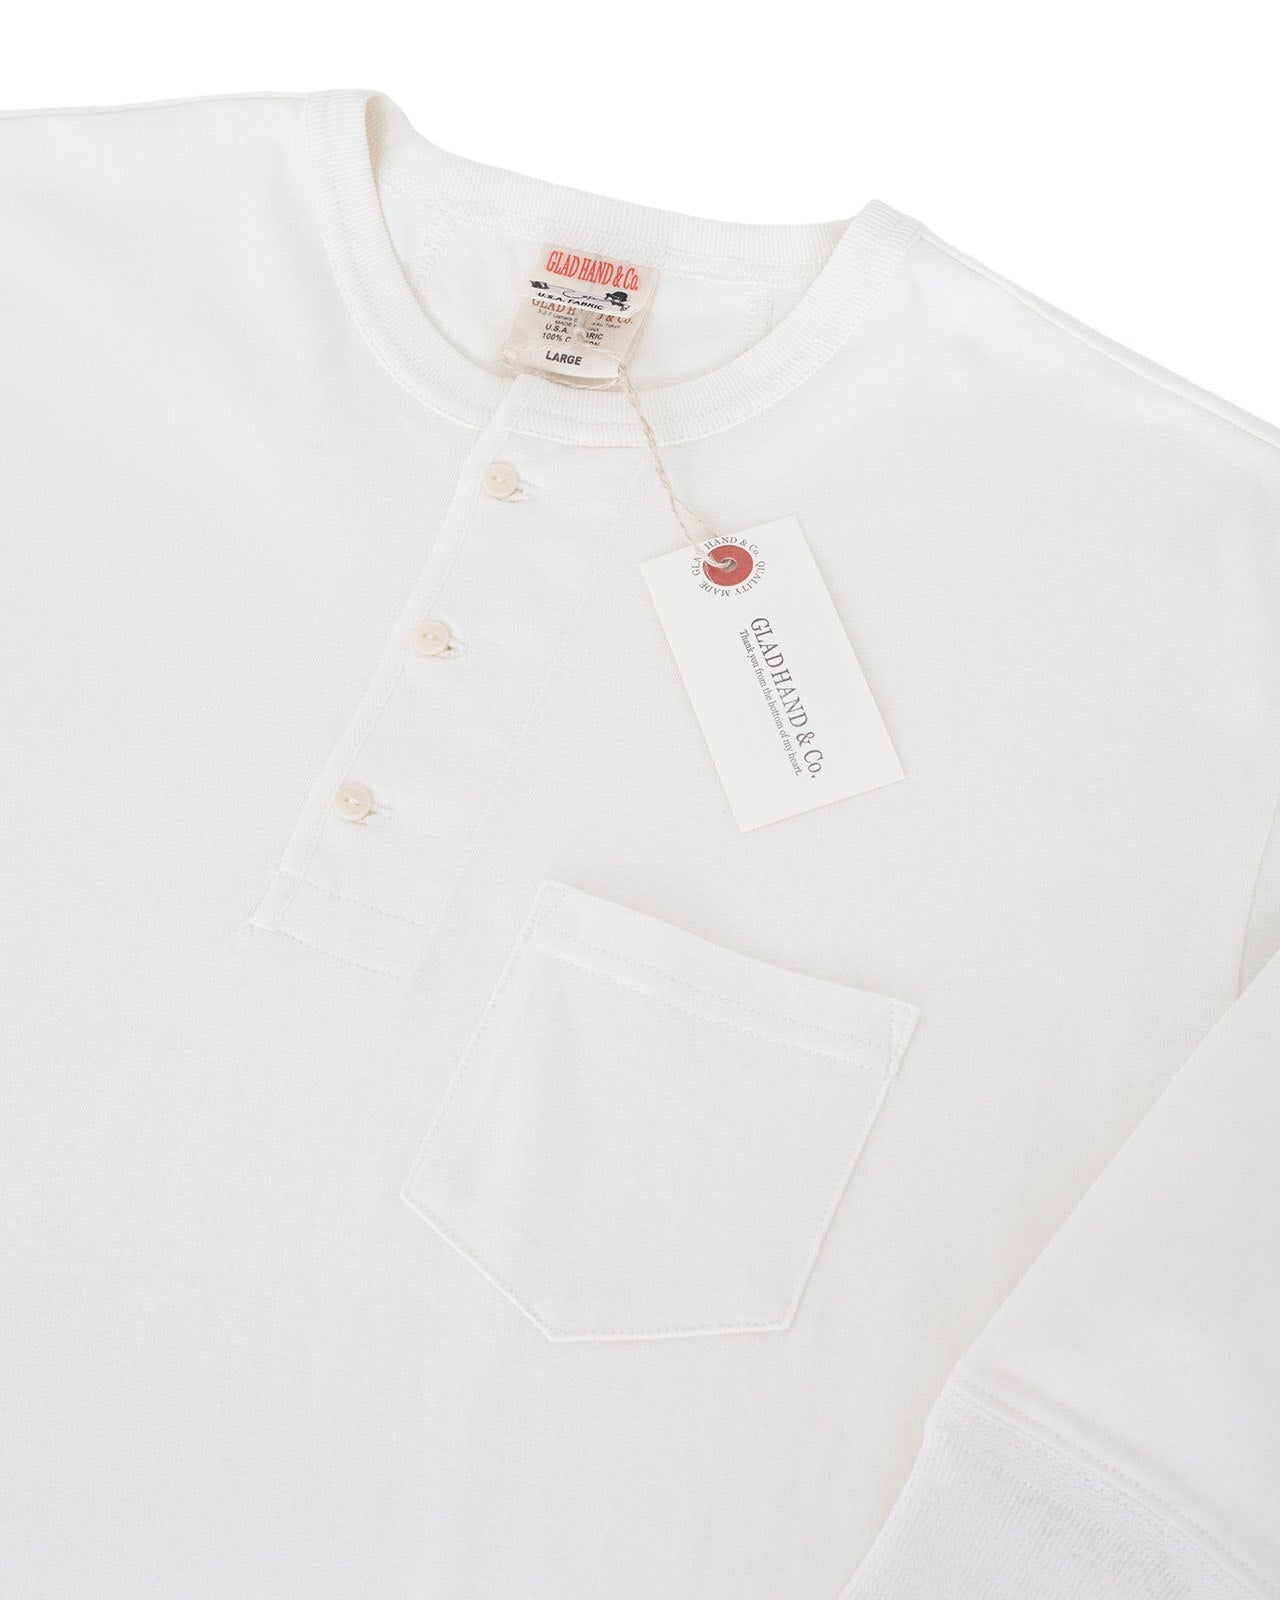 Glad Hand Henley Pocket T-Shirt, White